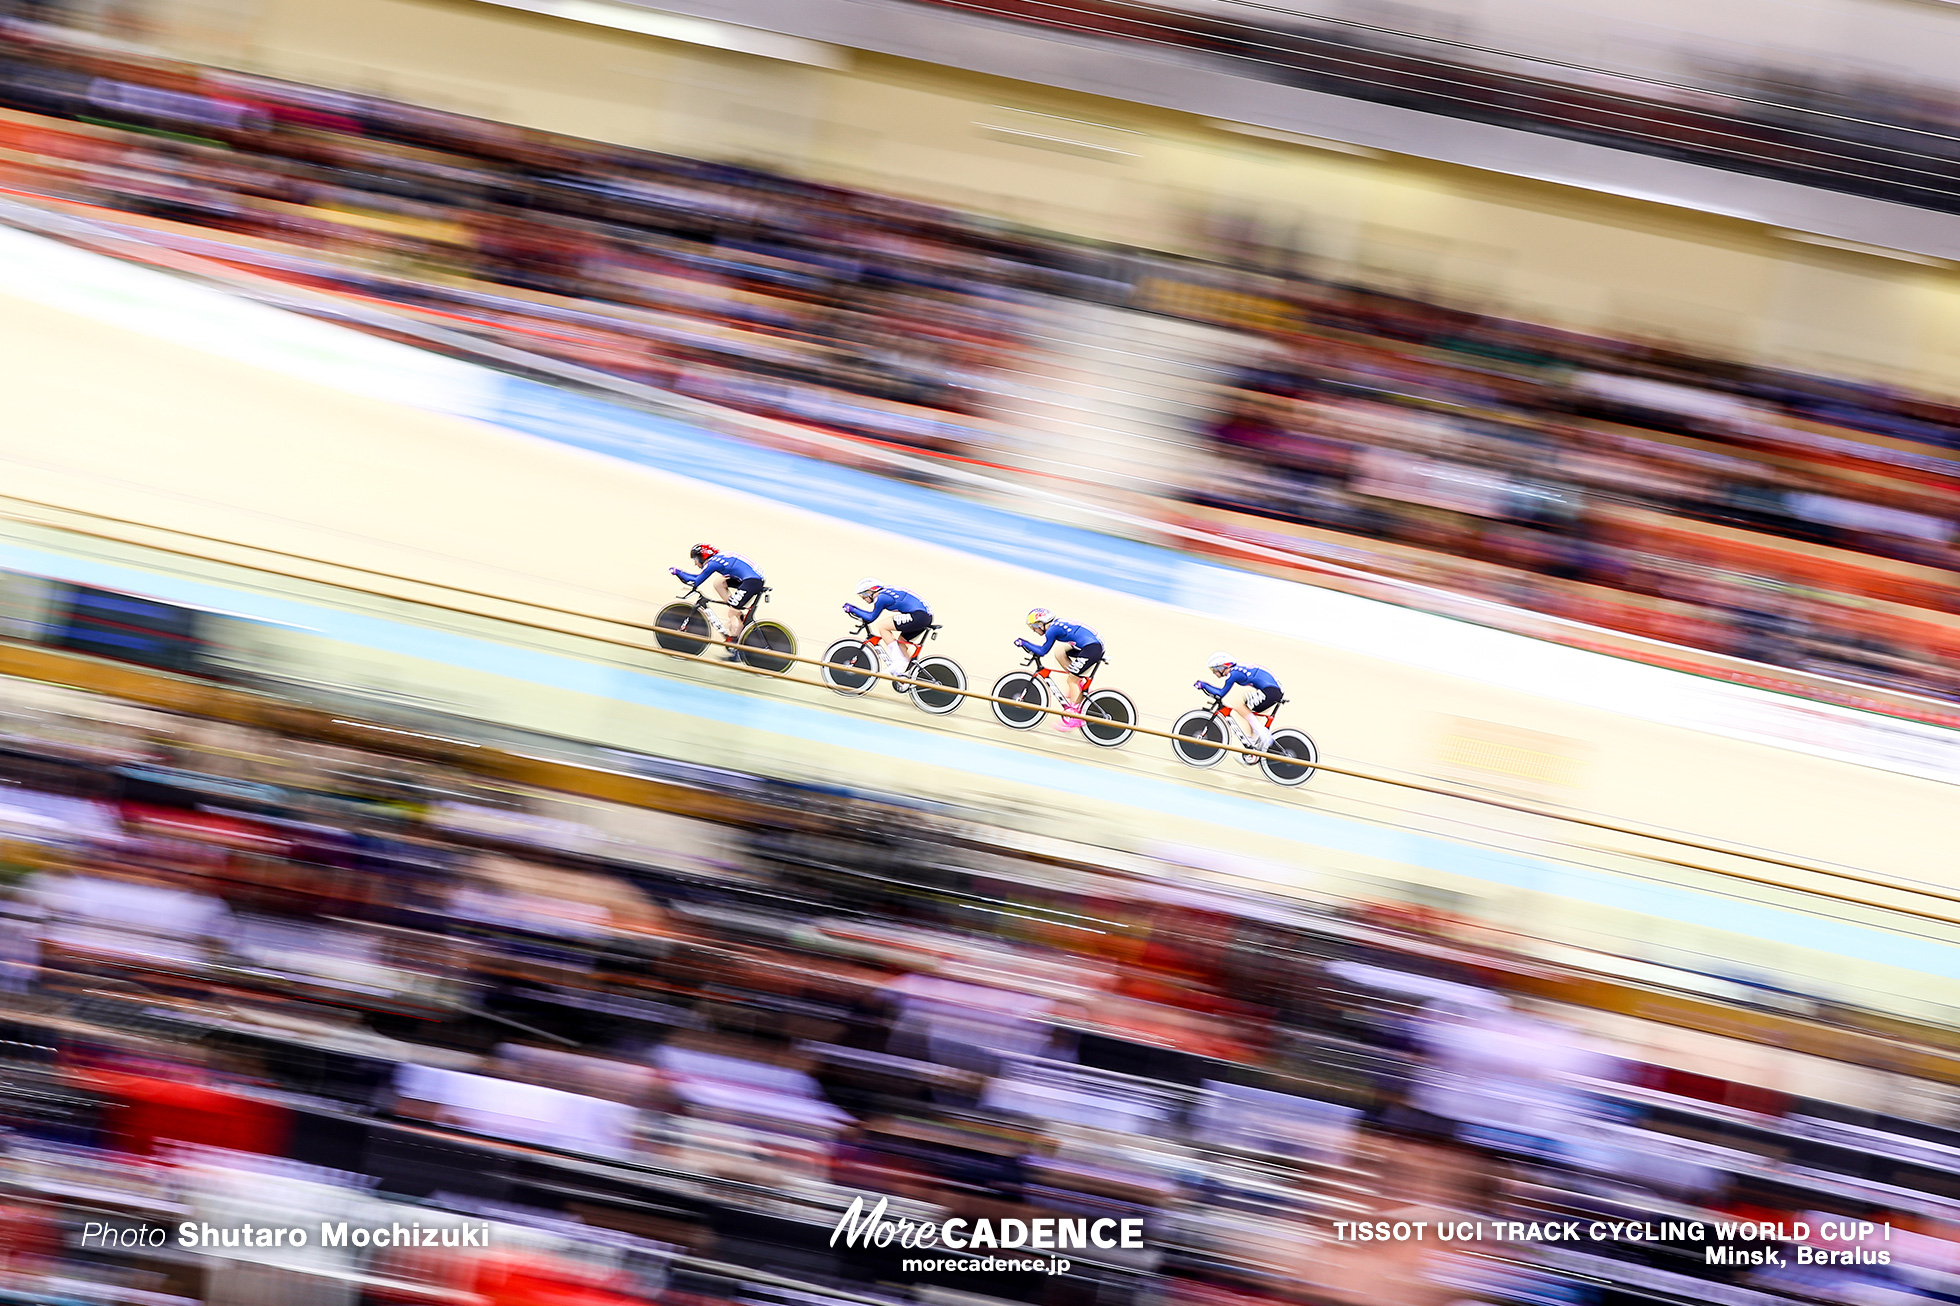 Final / Women's Team Pursuit / TISSOT UCI TRACK CYCLING WORLD CUP I, Minsk, Beralus